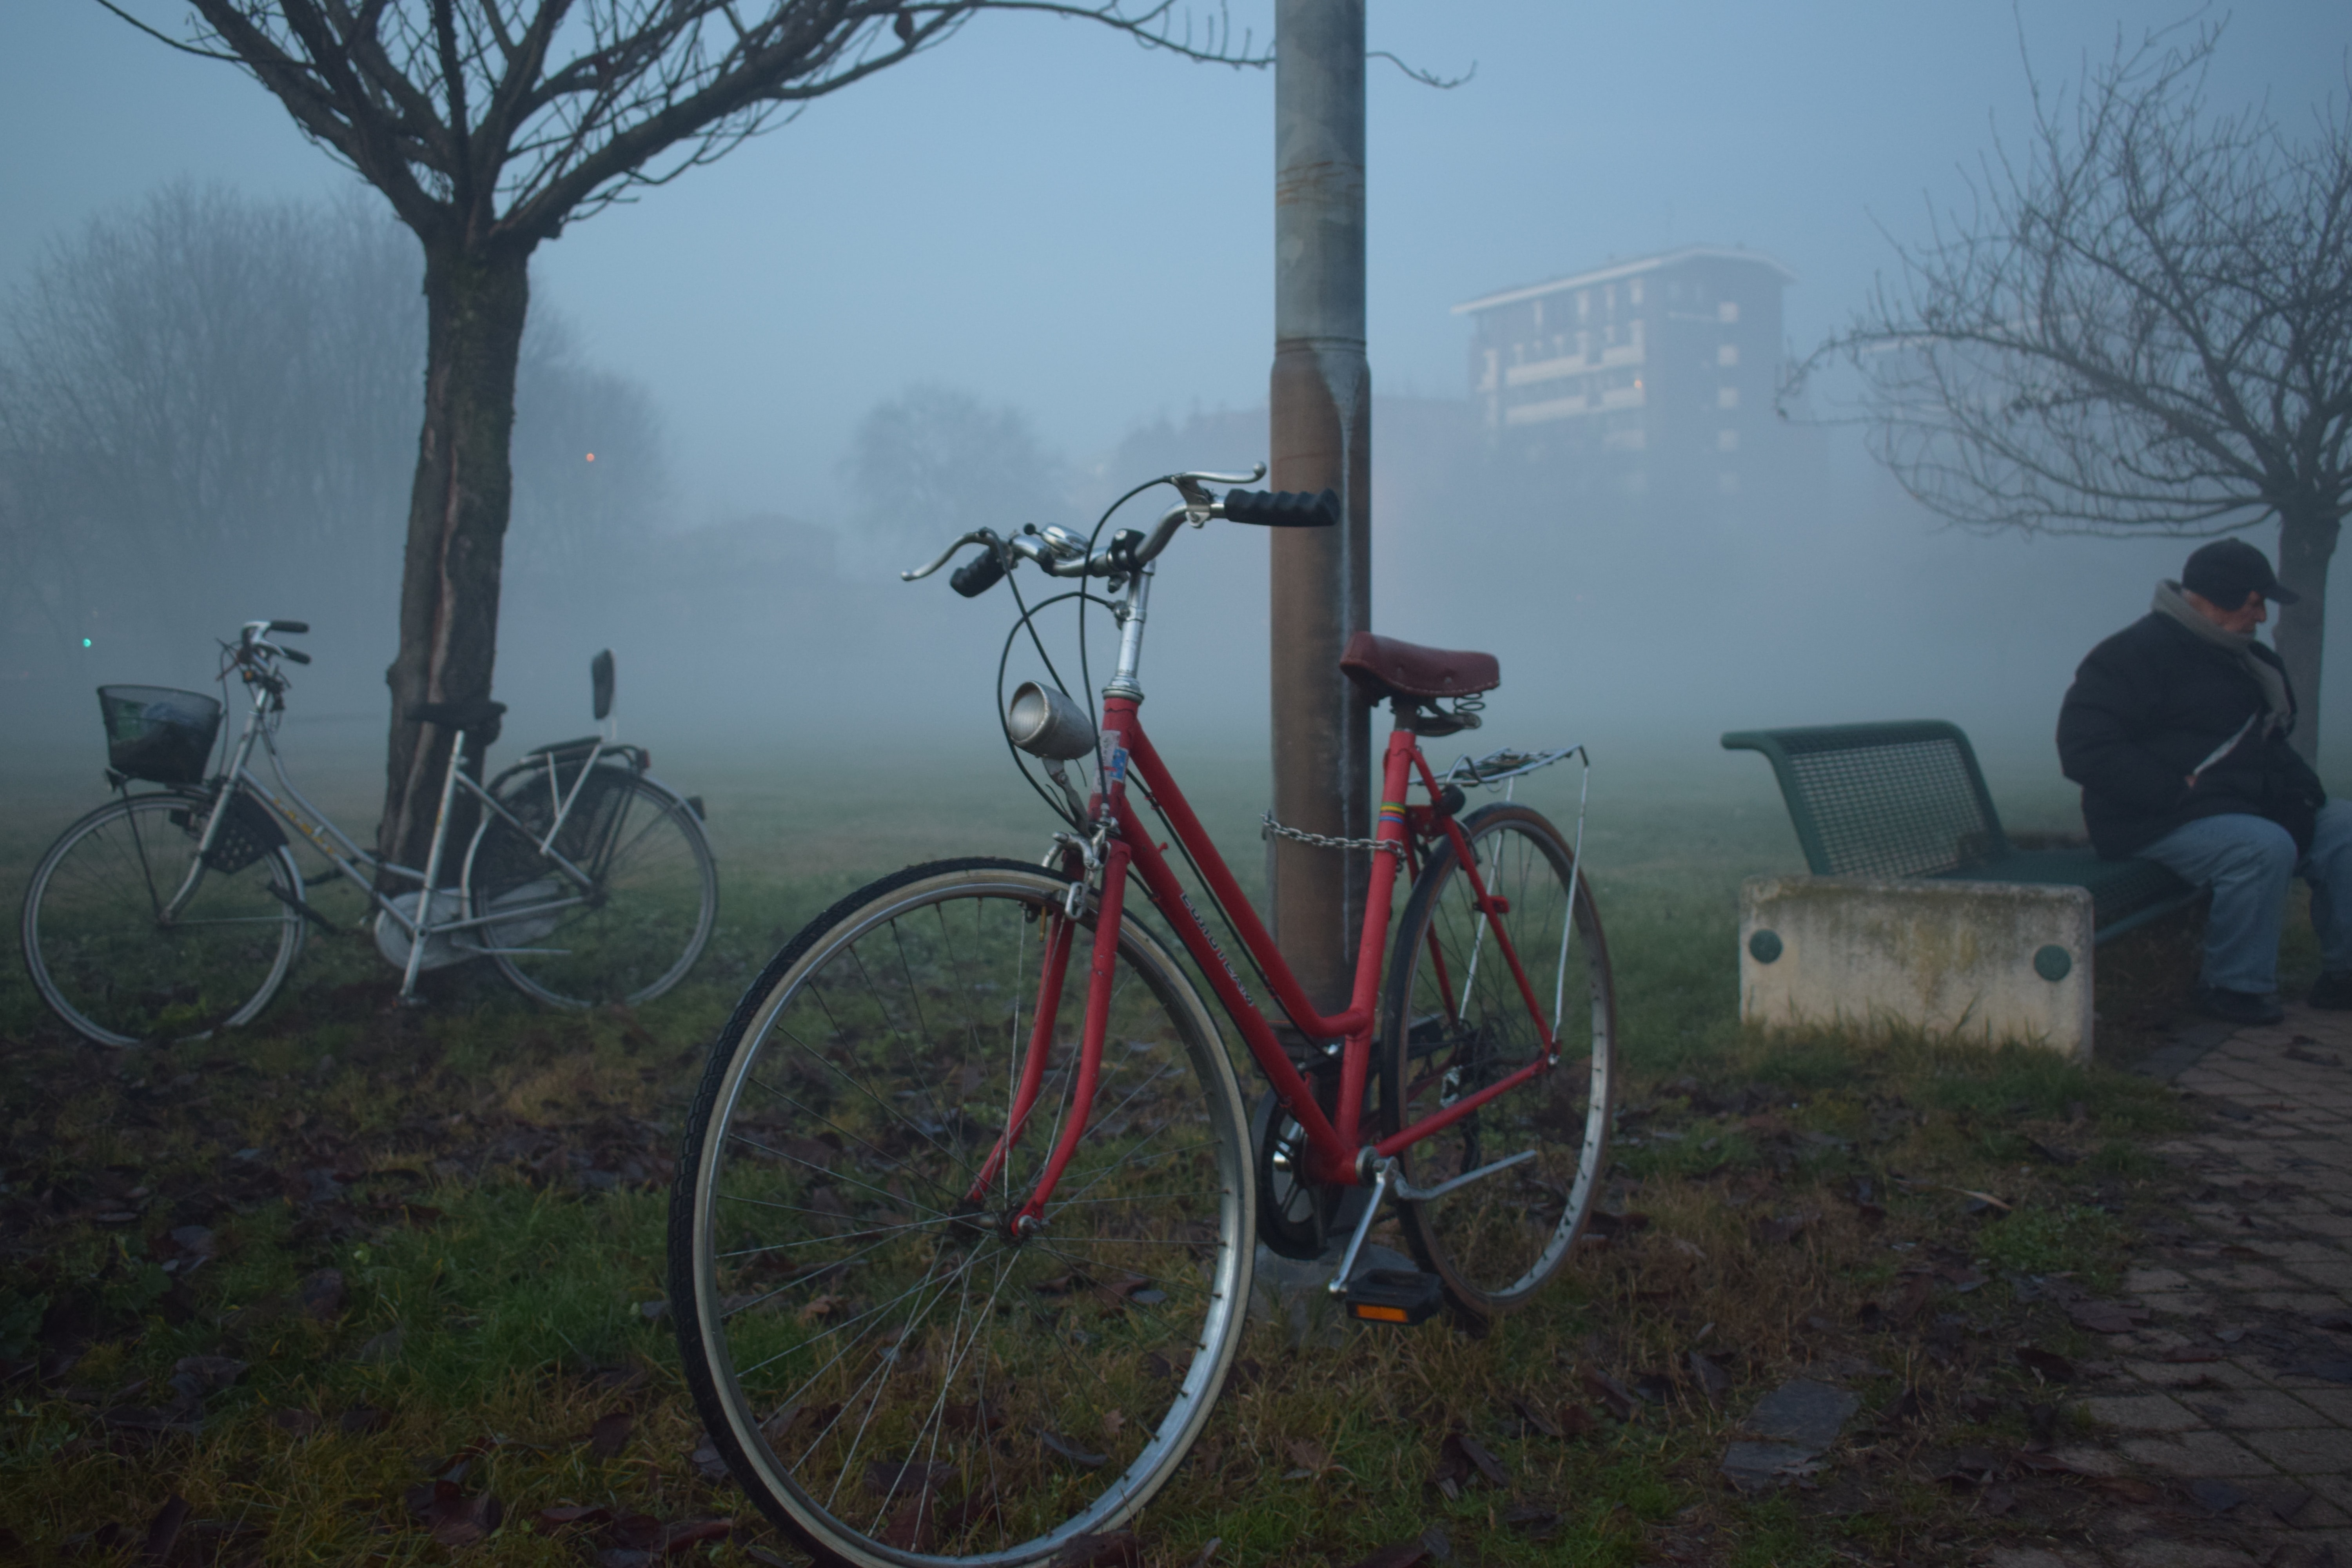 Bicycles parked by a tree, with a person sitting on a park bench.